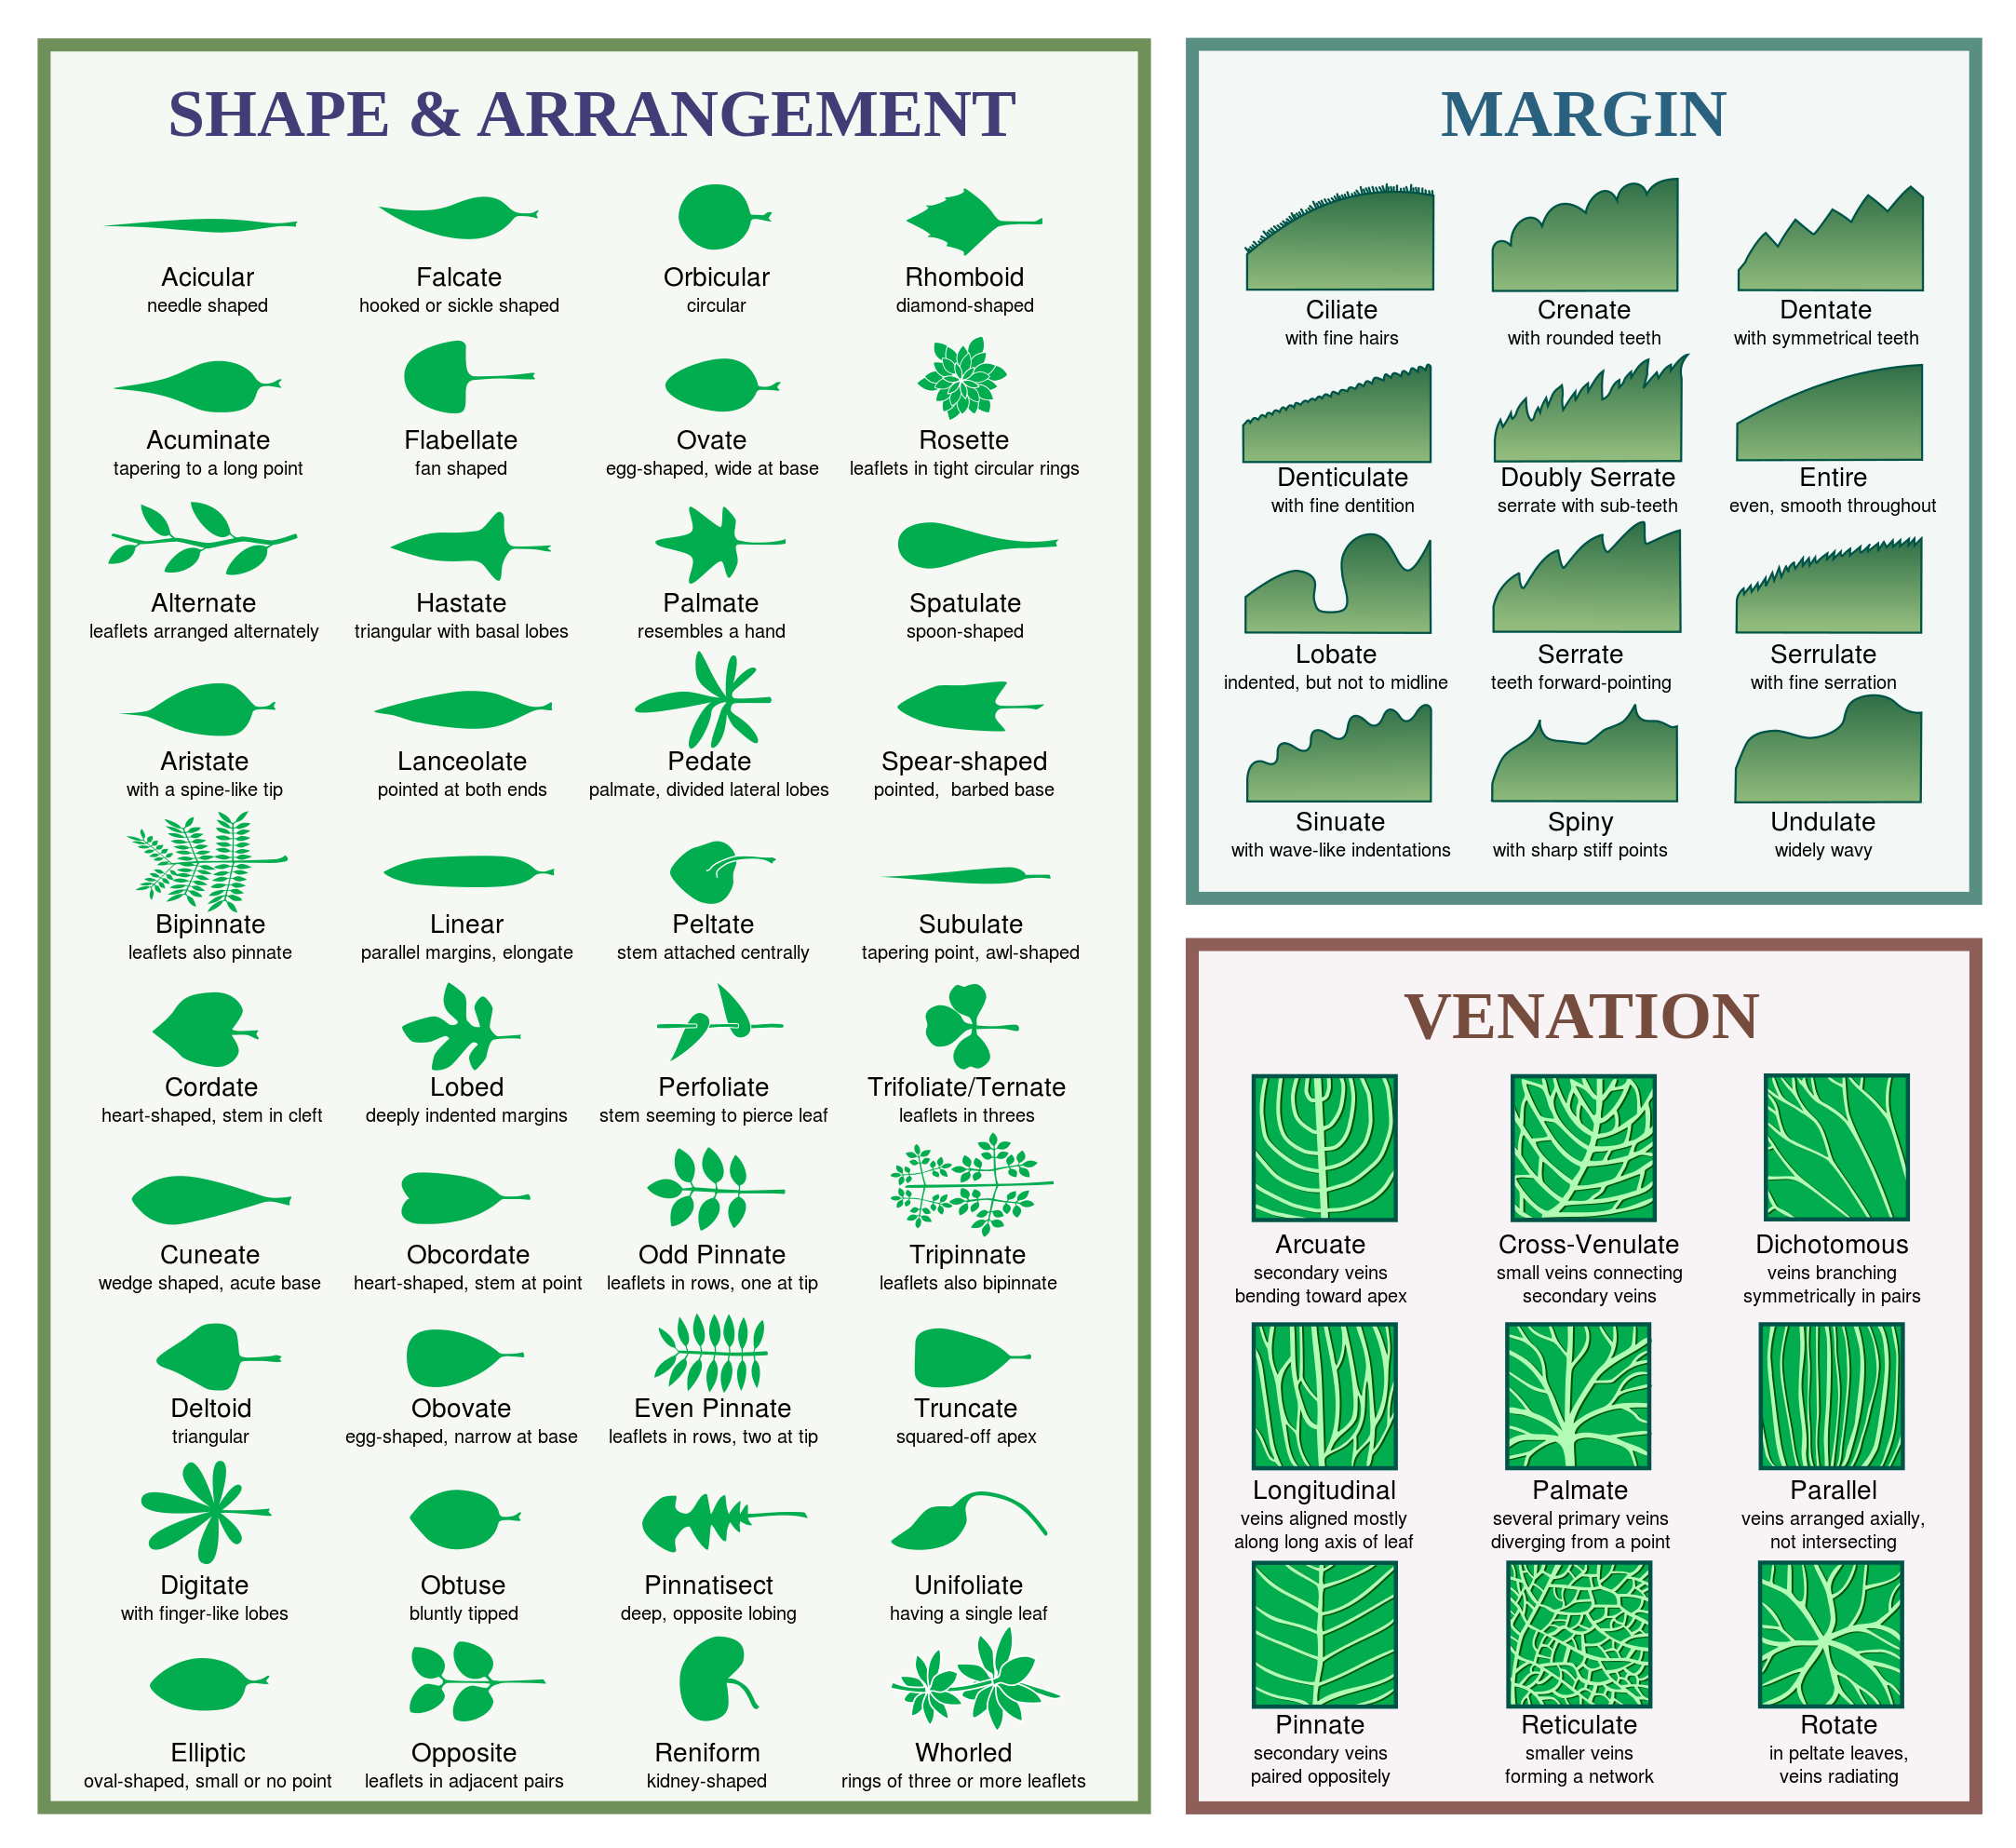 New England Shrub Identification Small Round Leaves Evergreen Google Search Leaf Identification Chart Leaf Identification Plant Identification